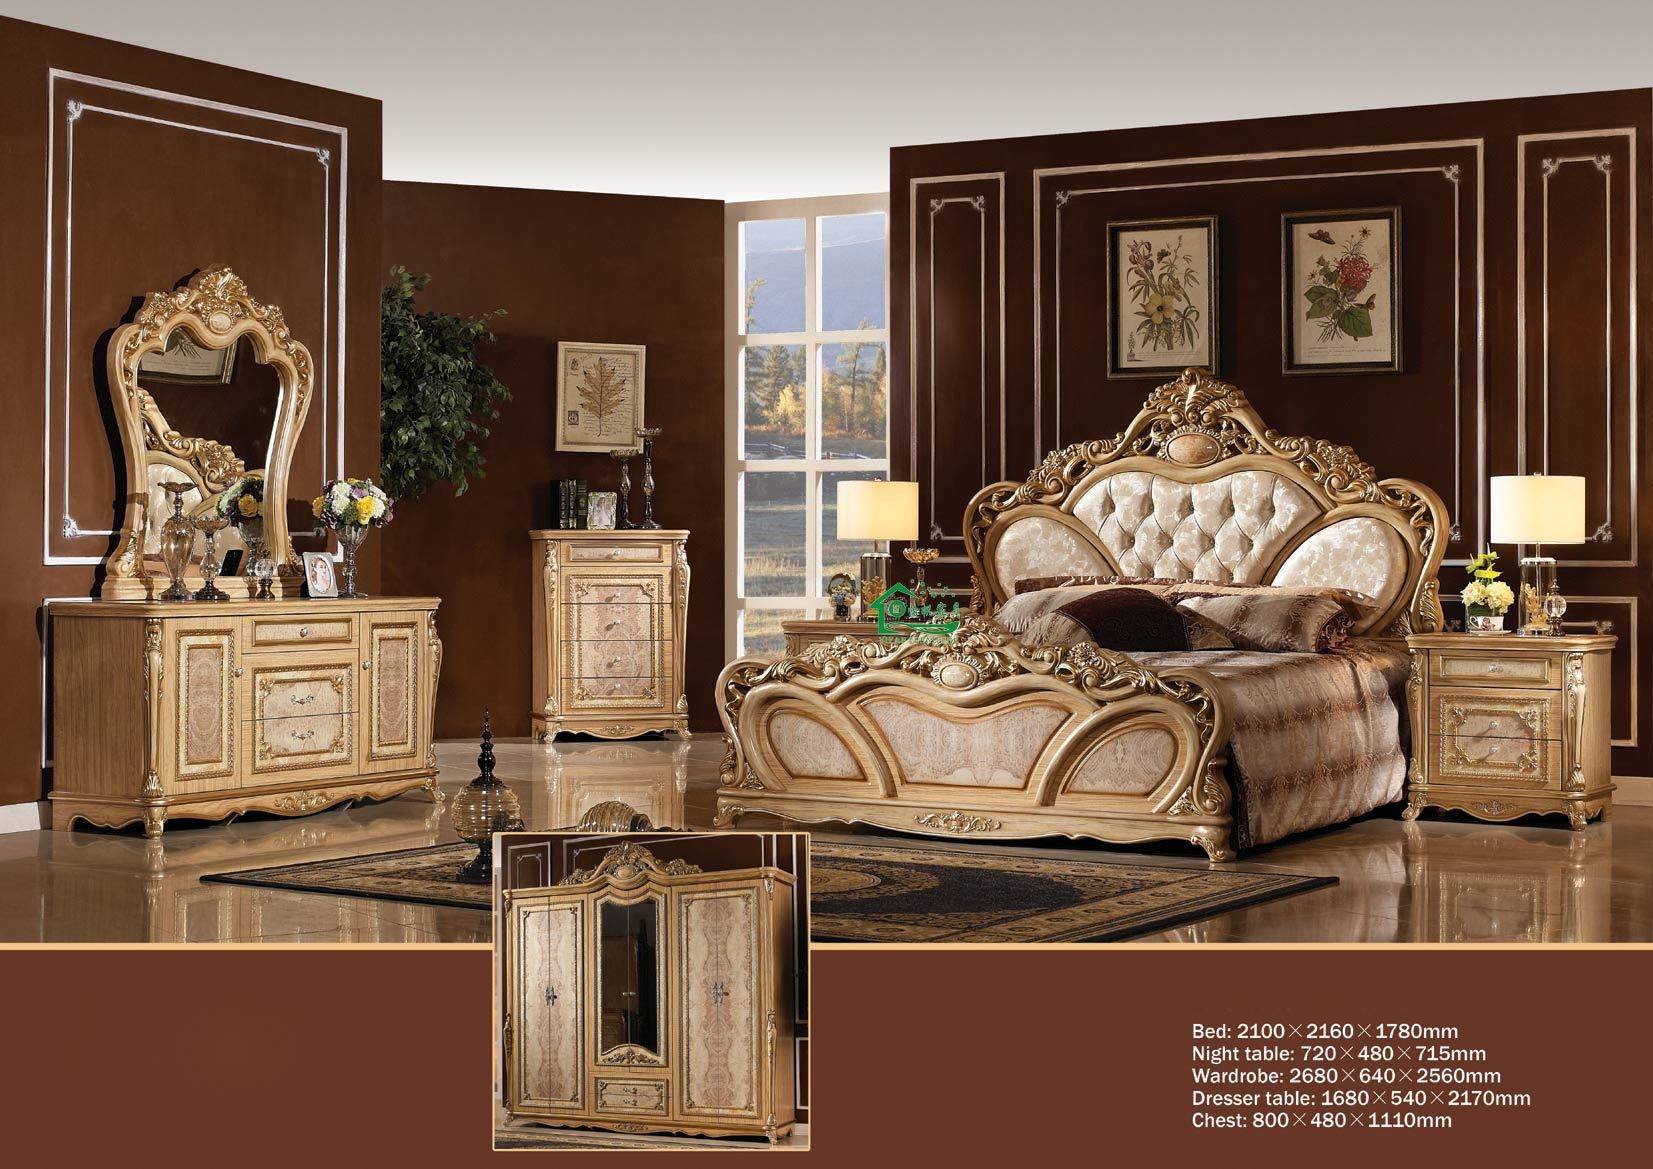 Bedroom Ka Design Sweet New Design Furniture Plus Sales Promotion 2014 New